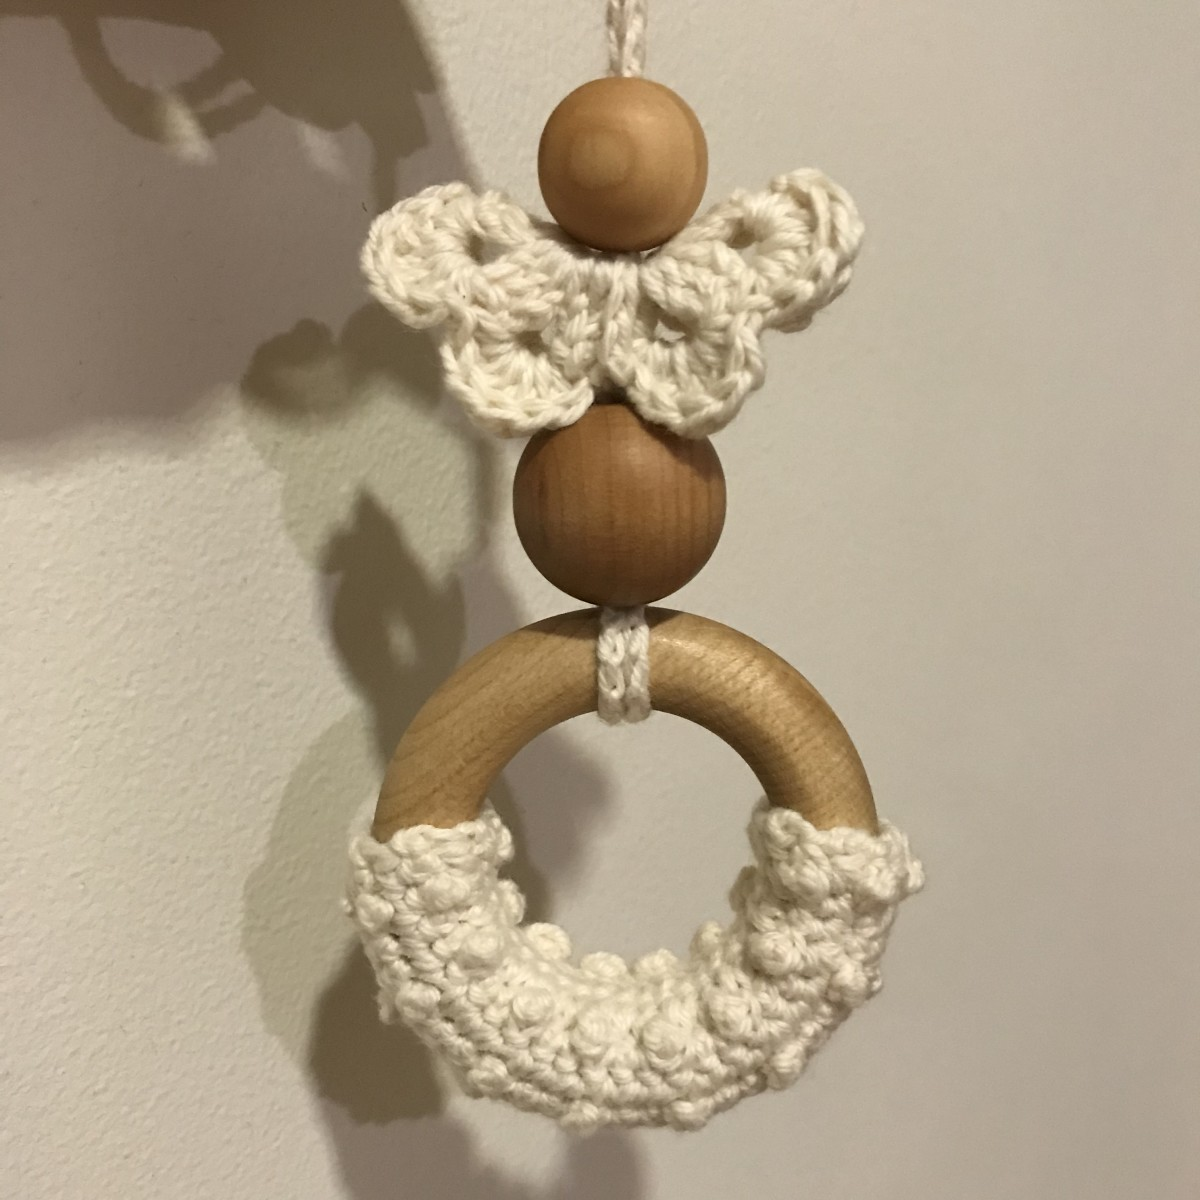 Berry-Stitched Teething Ring Turned Into a Teething Necklace With Crocheted Butterfly and Wooden Beads